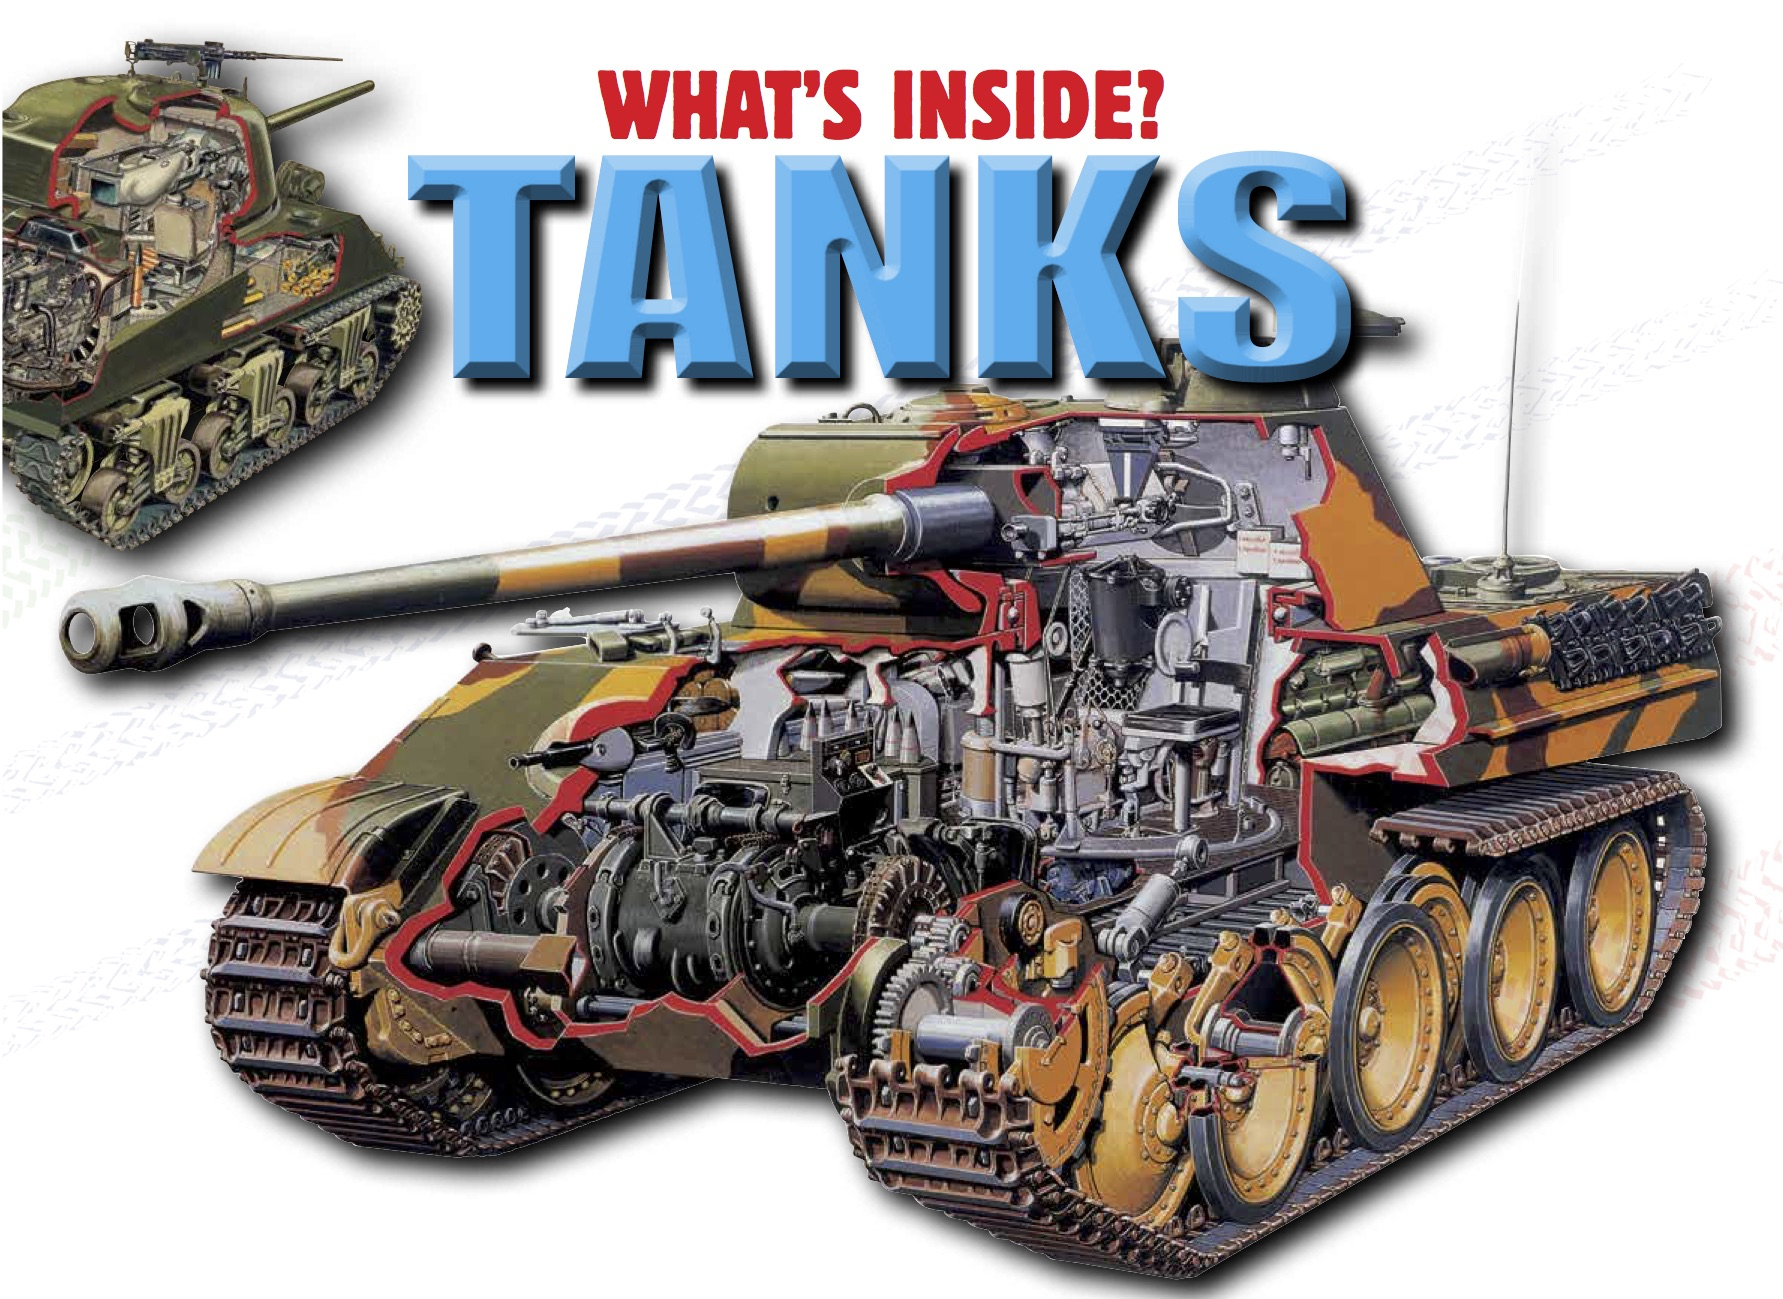 What's Inside? Tanks